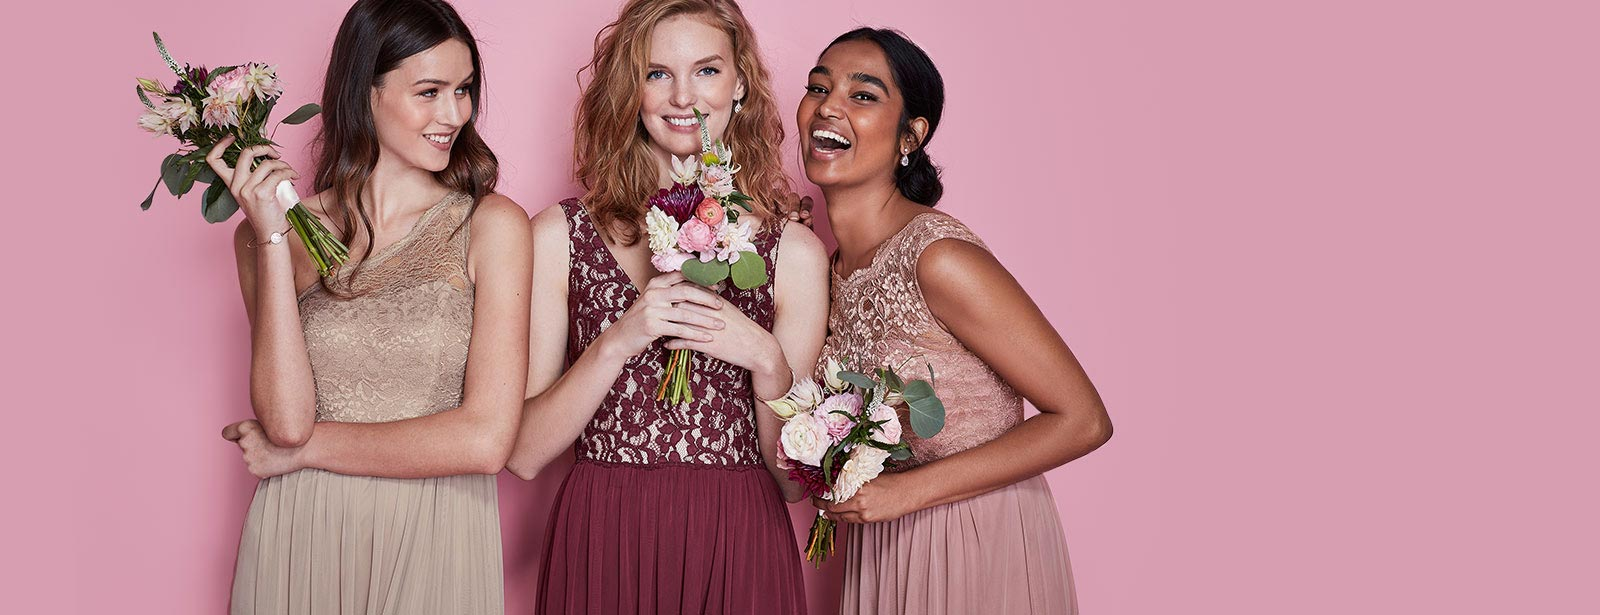 Three bridesmaids in colorful dresses holding flower